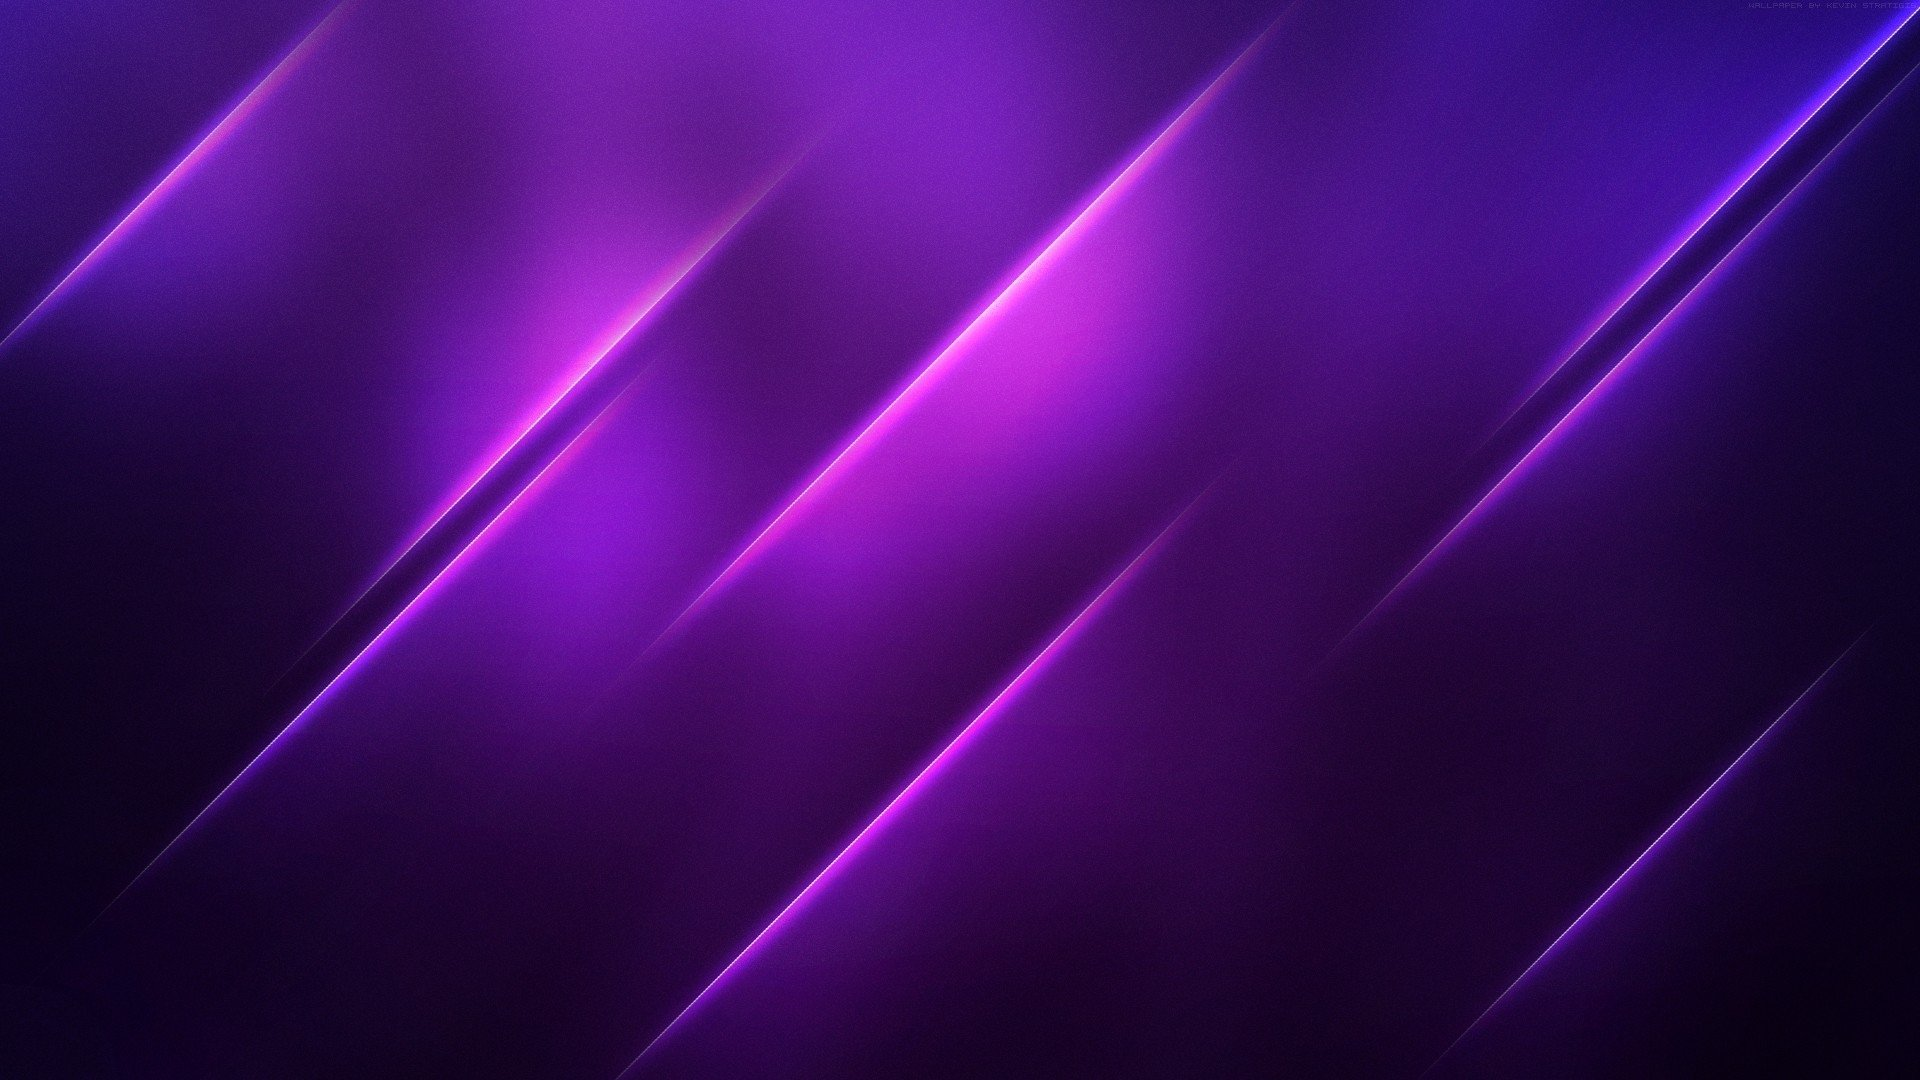 Solid Purple Backgrounds wallpaper Solid Purple Backgrounds hd 1920x1080